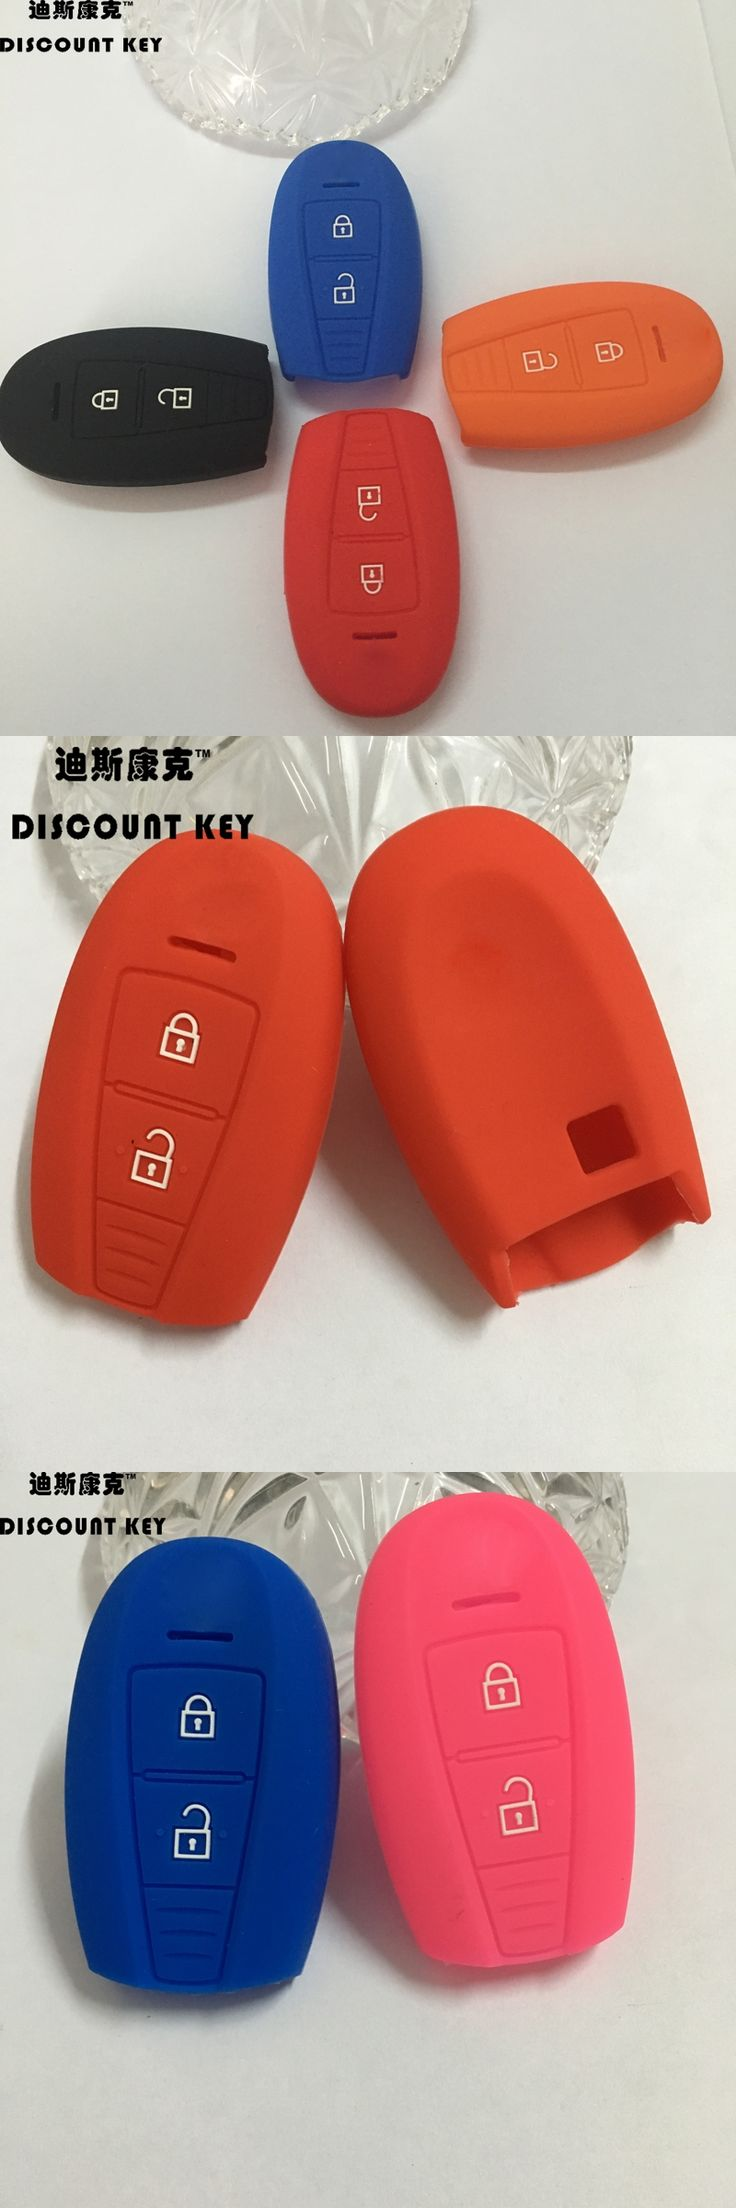 silicone car key case cover for SUZUKI Swift Sport SX4 SCORSS 2 buttons silicone rubber key cover case car accessories key bag